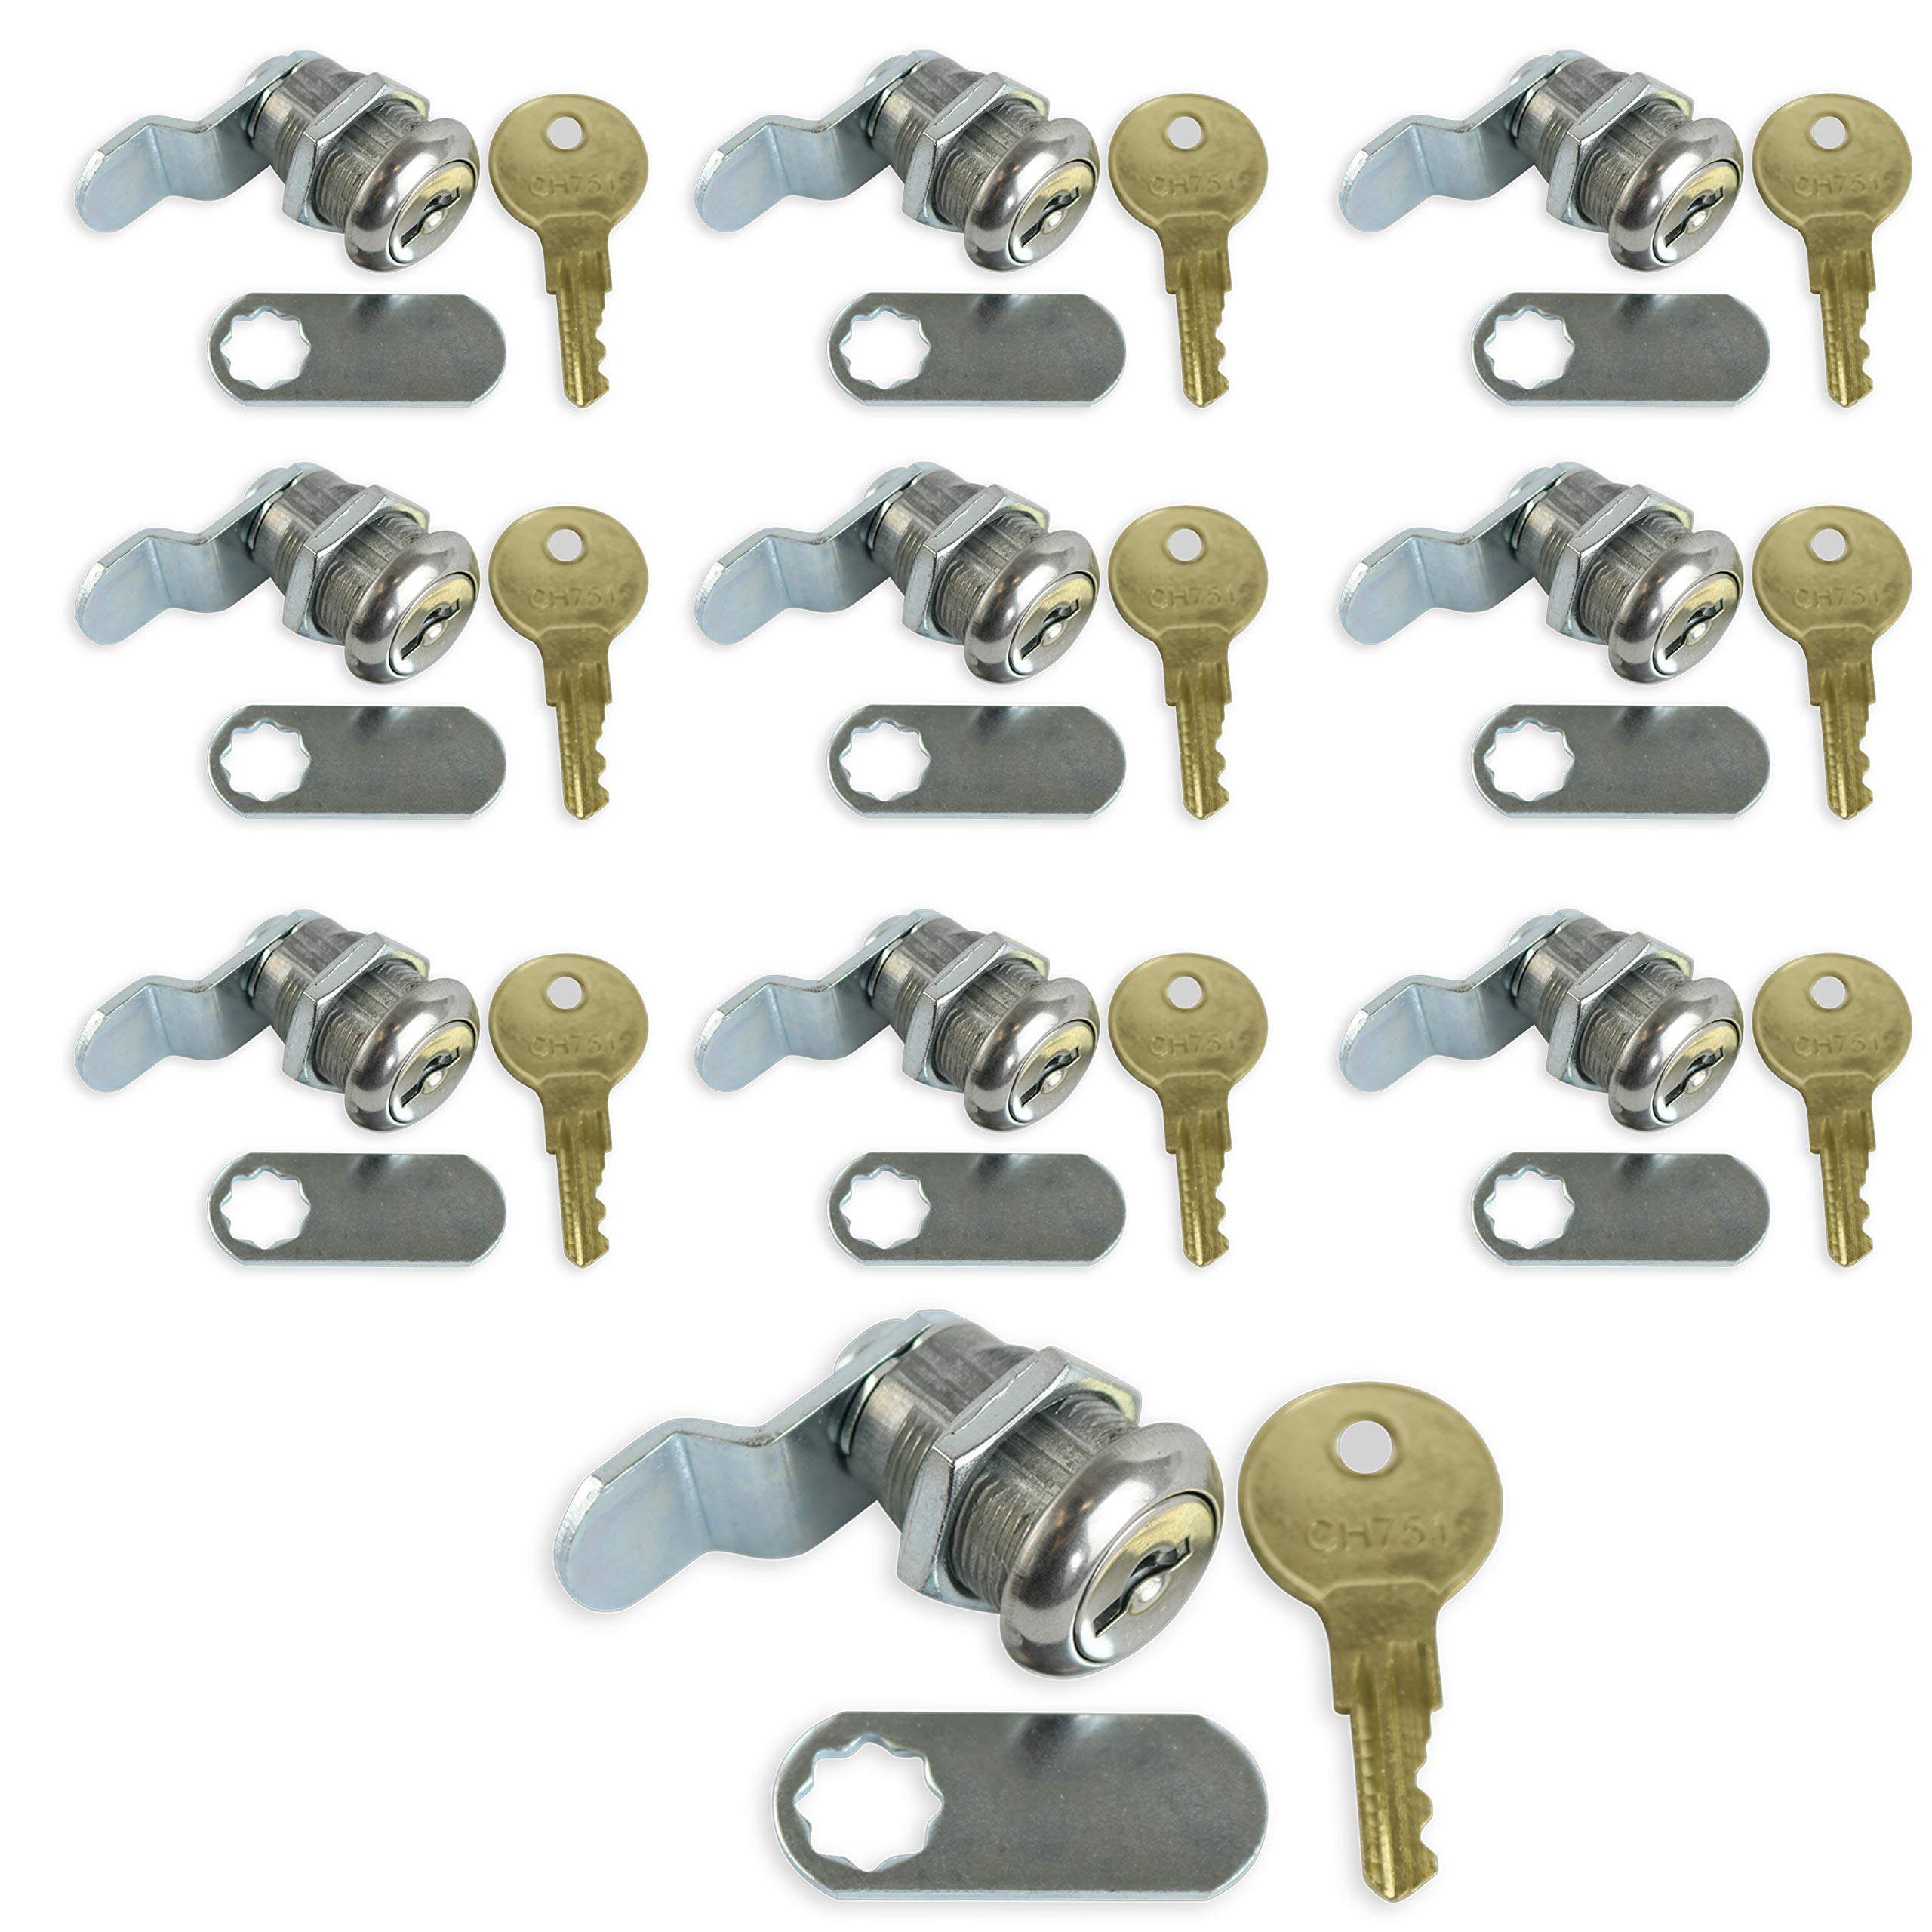 Leisure Coachworks 10 Pack 7/8'' Keyed Camlock with Straight and Offset Cam Lock Latch Keyed Alike (10, 7/8'')